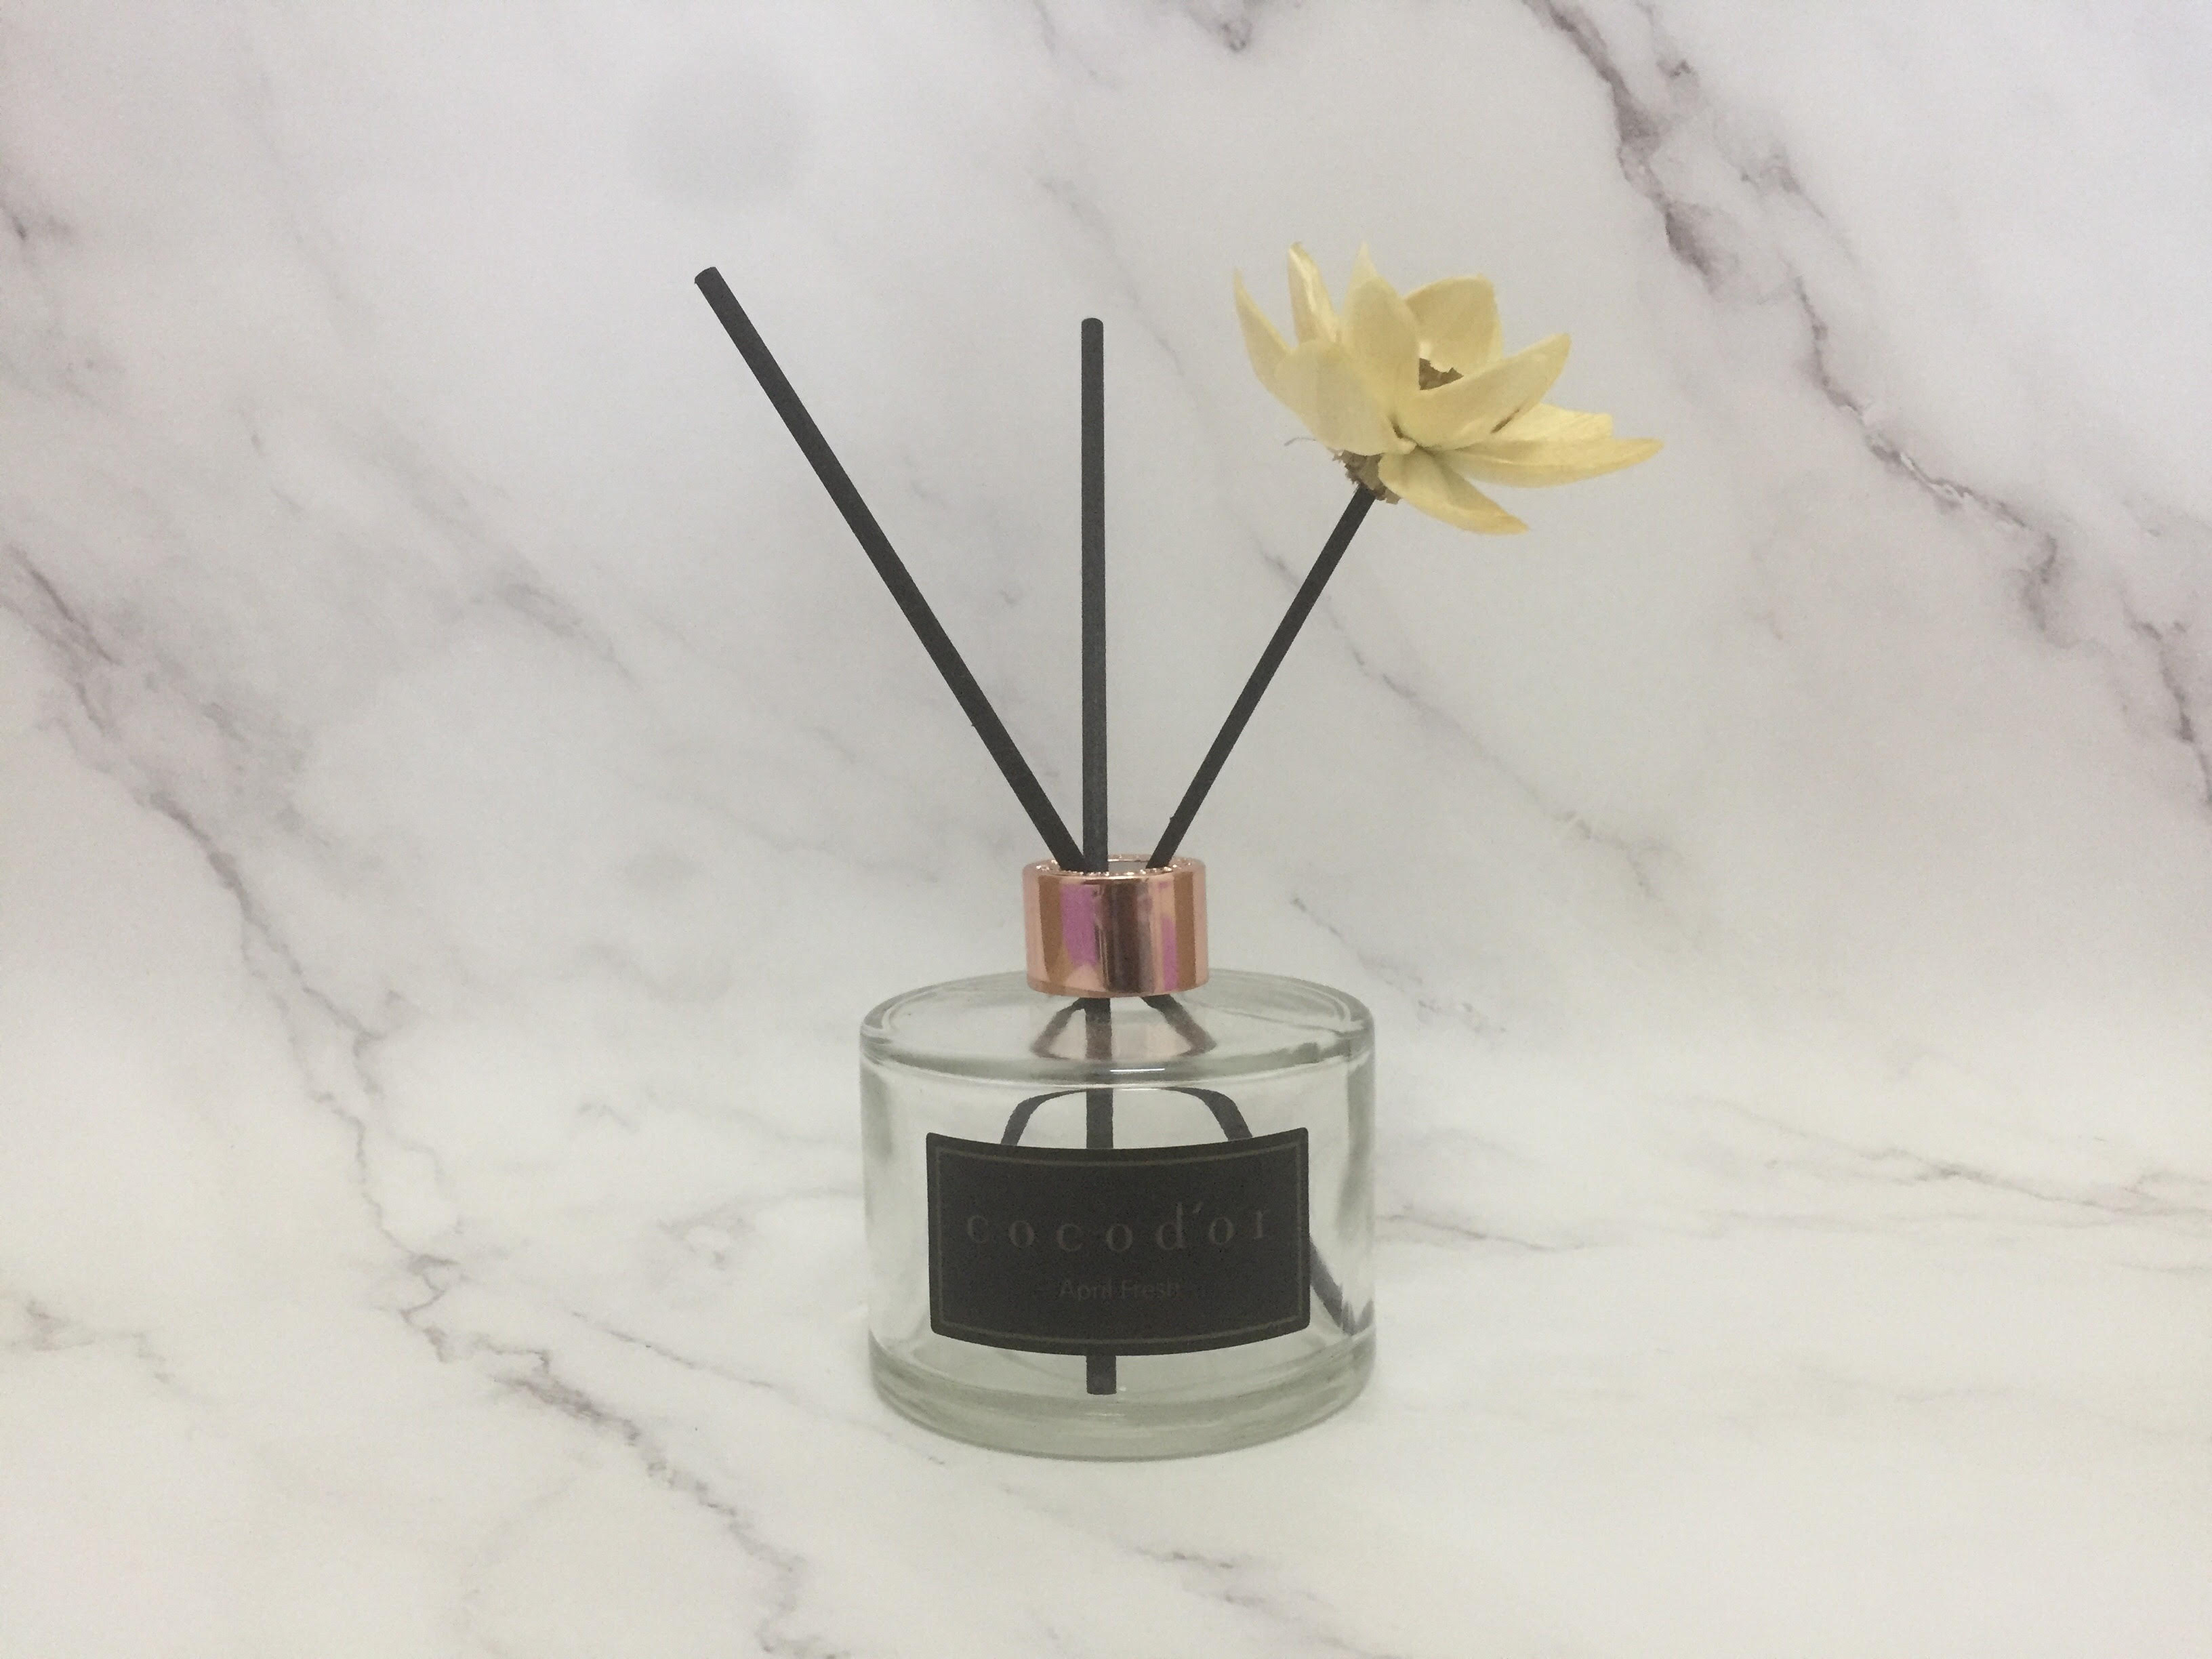 REVIEW | Cocod'or Reed Diffuser #April Fresh